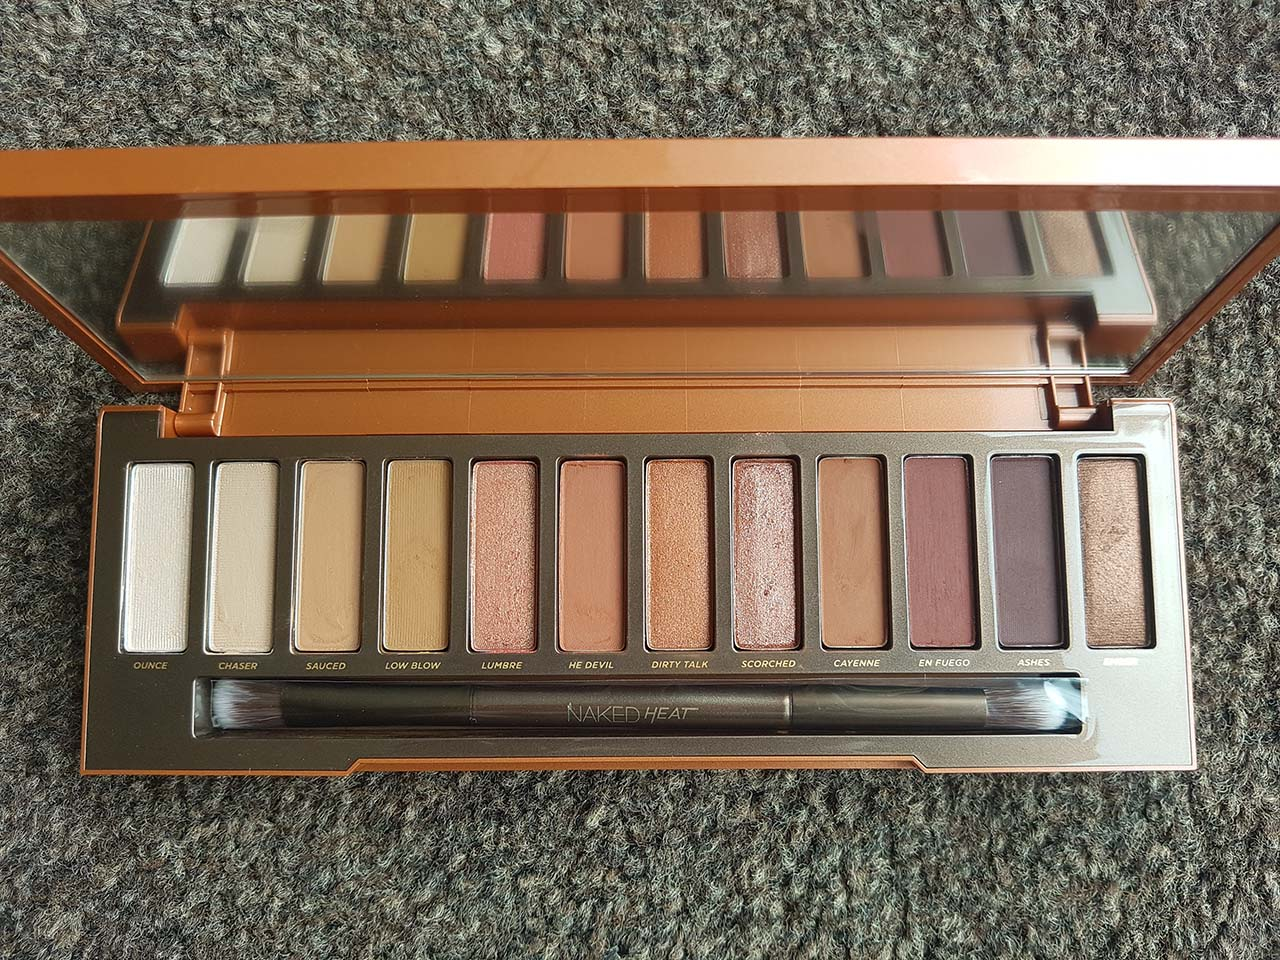 Urban Decay's Naked Heat Palette: A Hot Addition to the Naked Collection - Naked Heat Palette - Inside the sleeve, the palette casing was equally lovely. It is slightly holographic and again captures the colours contained within. I also loved the matchstick imagery in the bottom of the box.